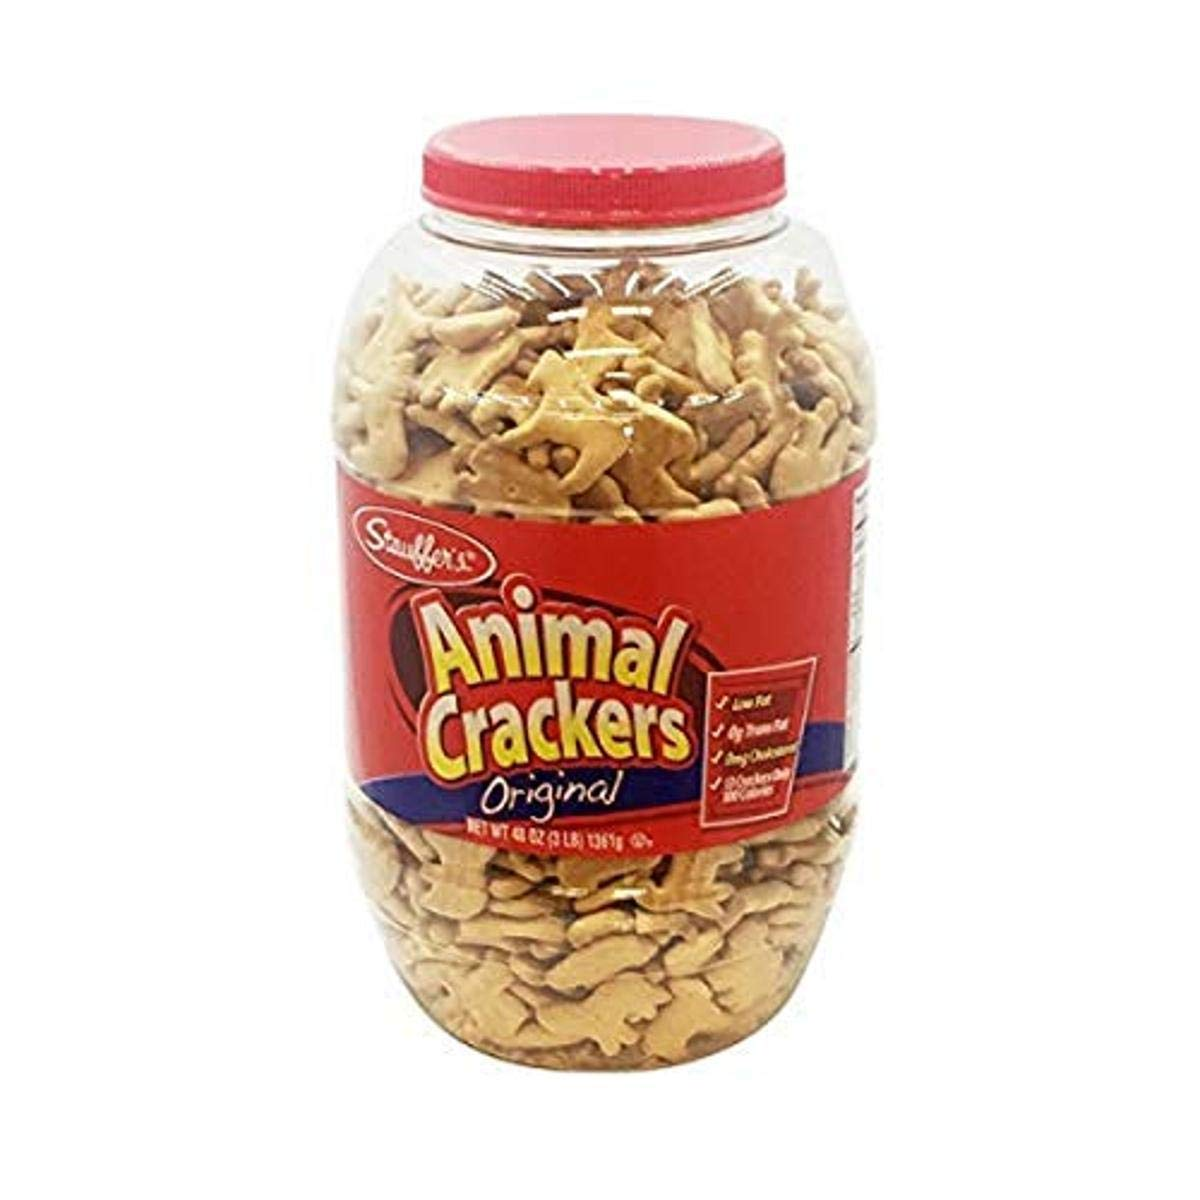 Stauffer's Original Animal Crackers 48oz - Super El Paso Mall beauty product restock quality top 4 jug PACK OF